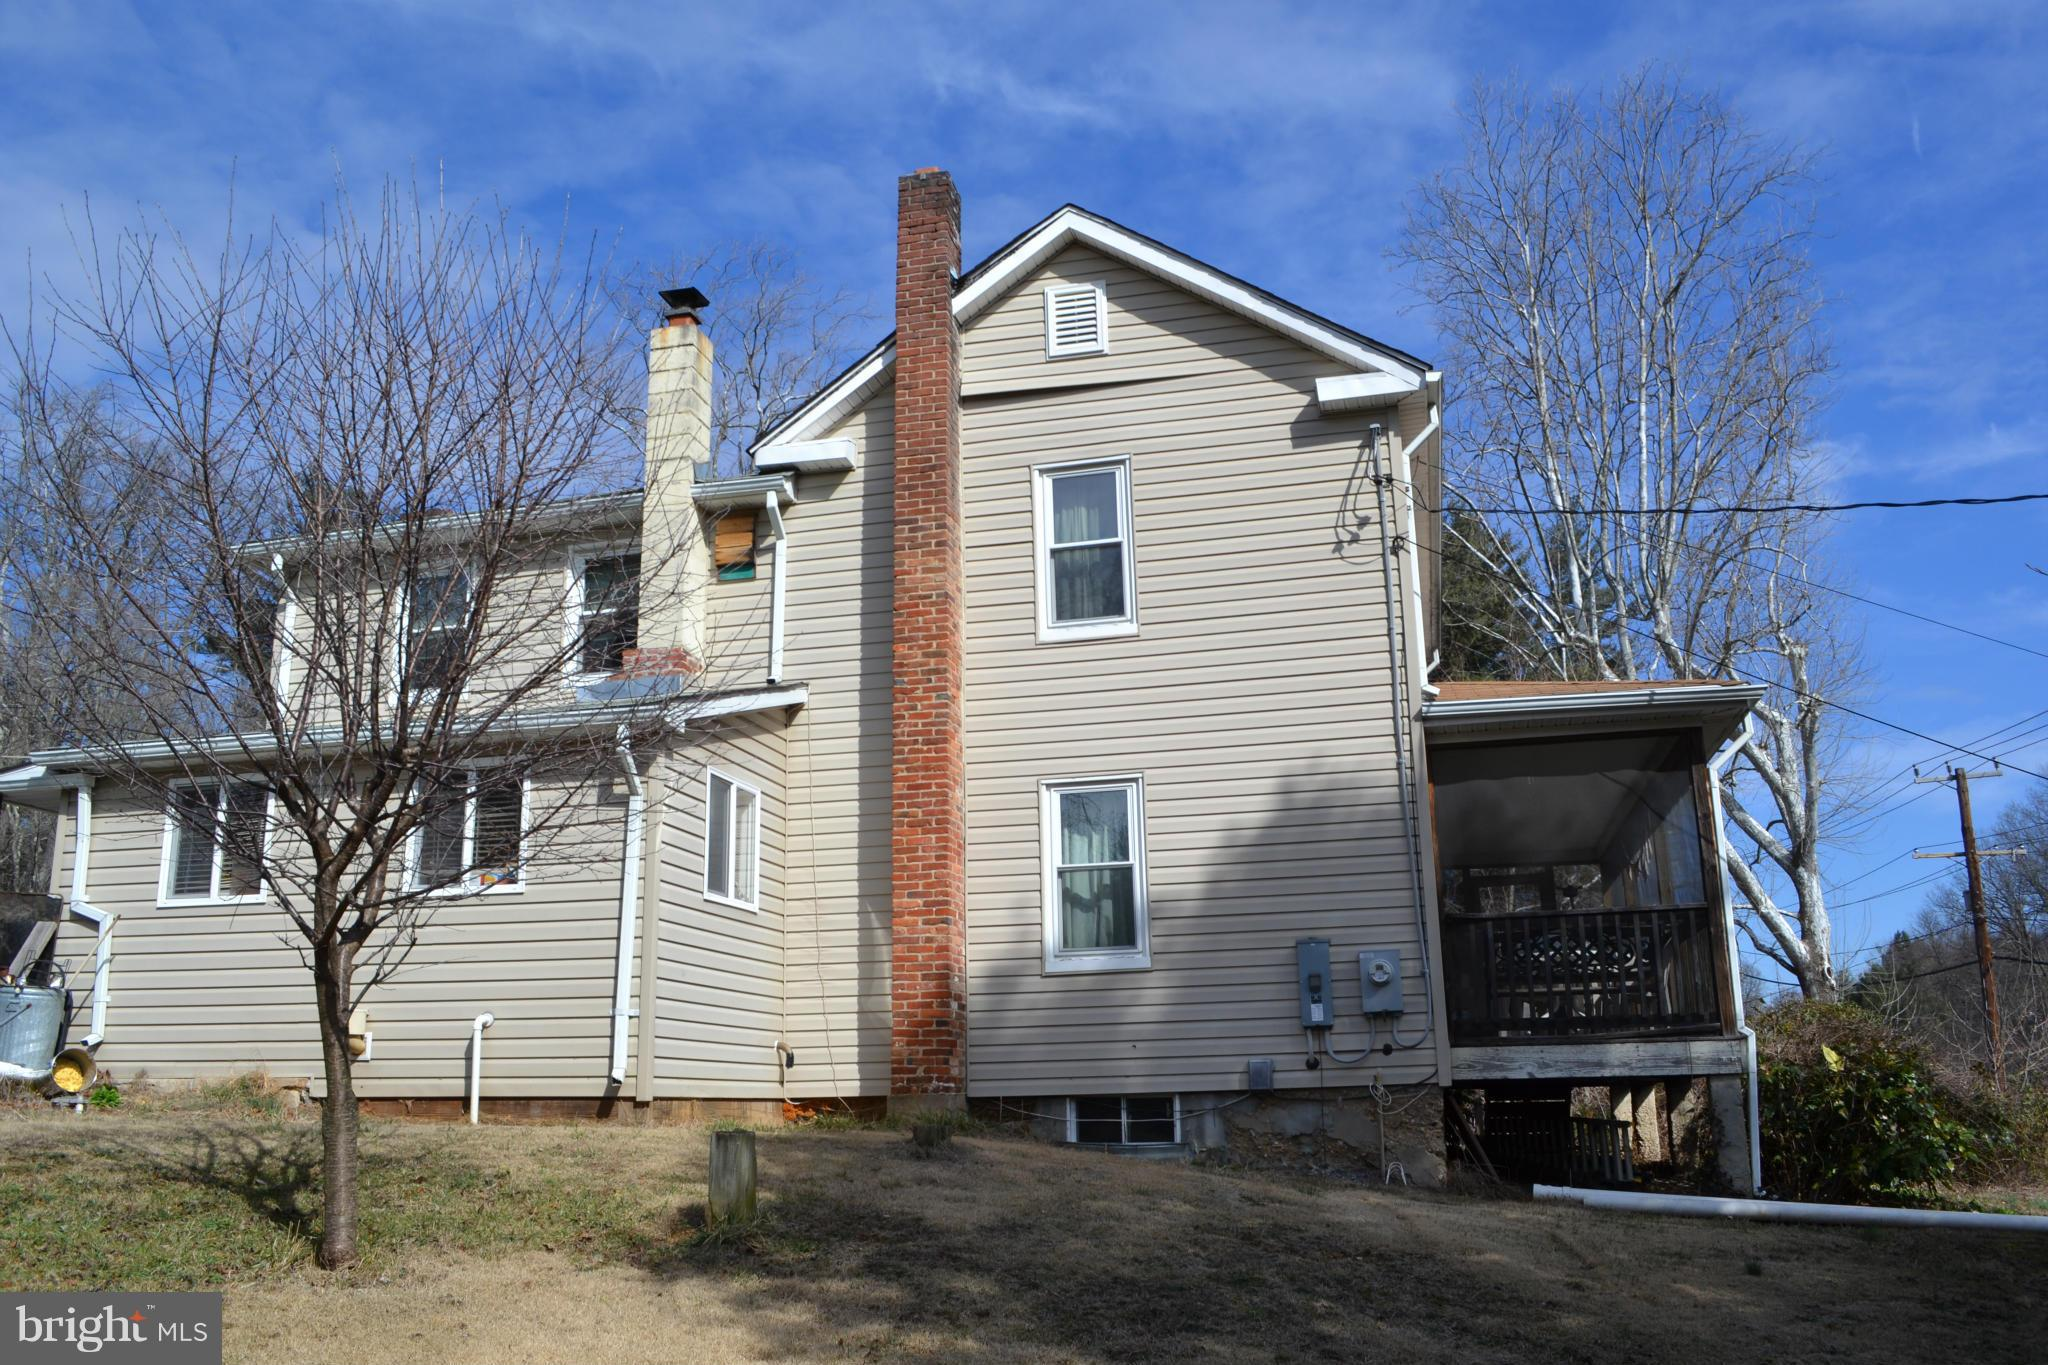 Wondrous 3122 Gamber Road Finksburg Md 21048 Sold Listing Mls 1000228146 Re Max Of Reading Home Interior And Landscaping Synyenasavecom